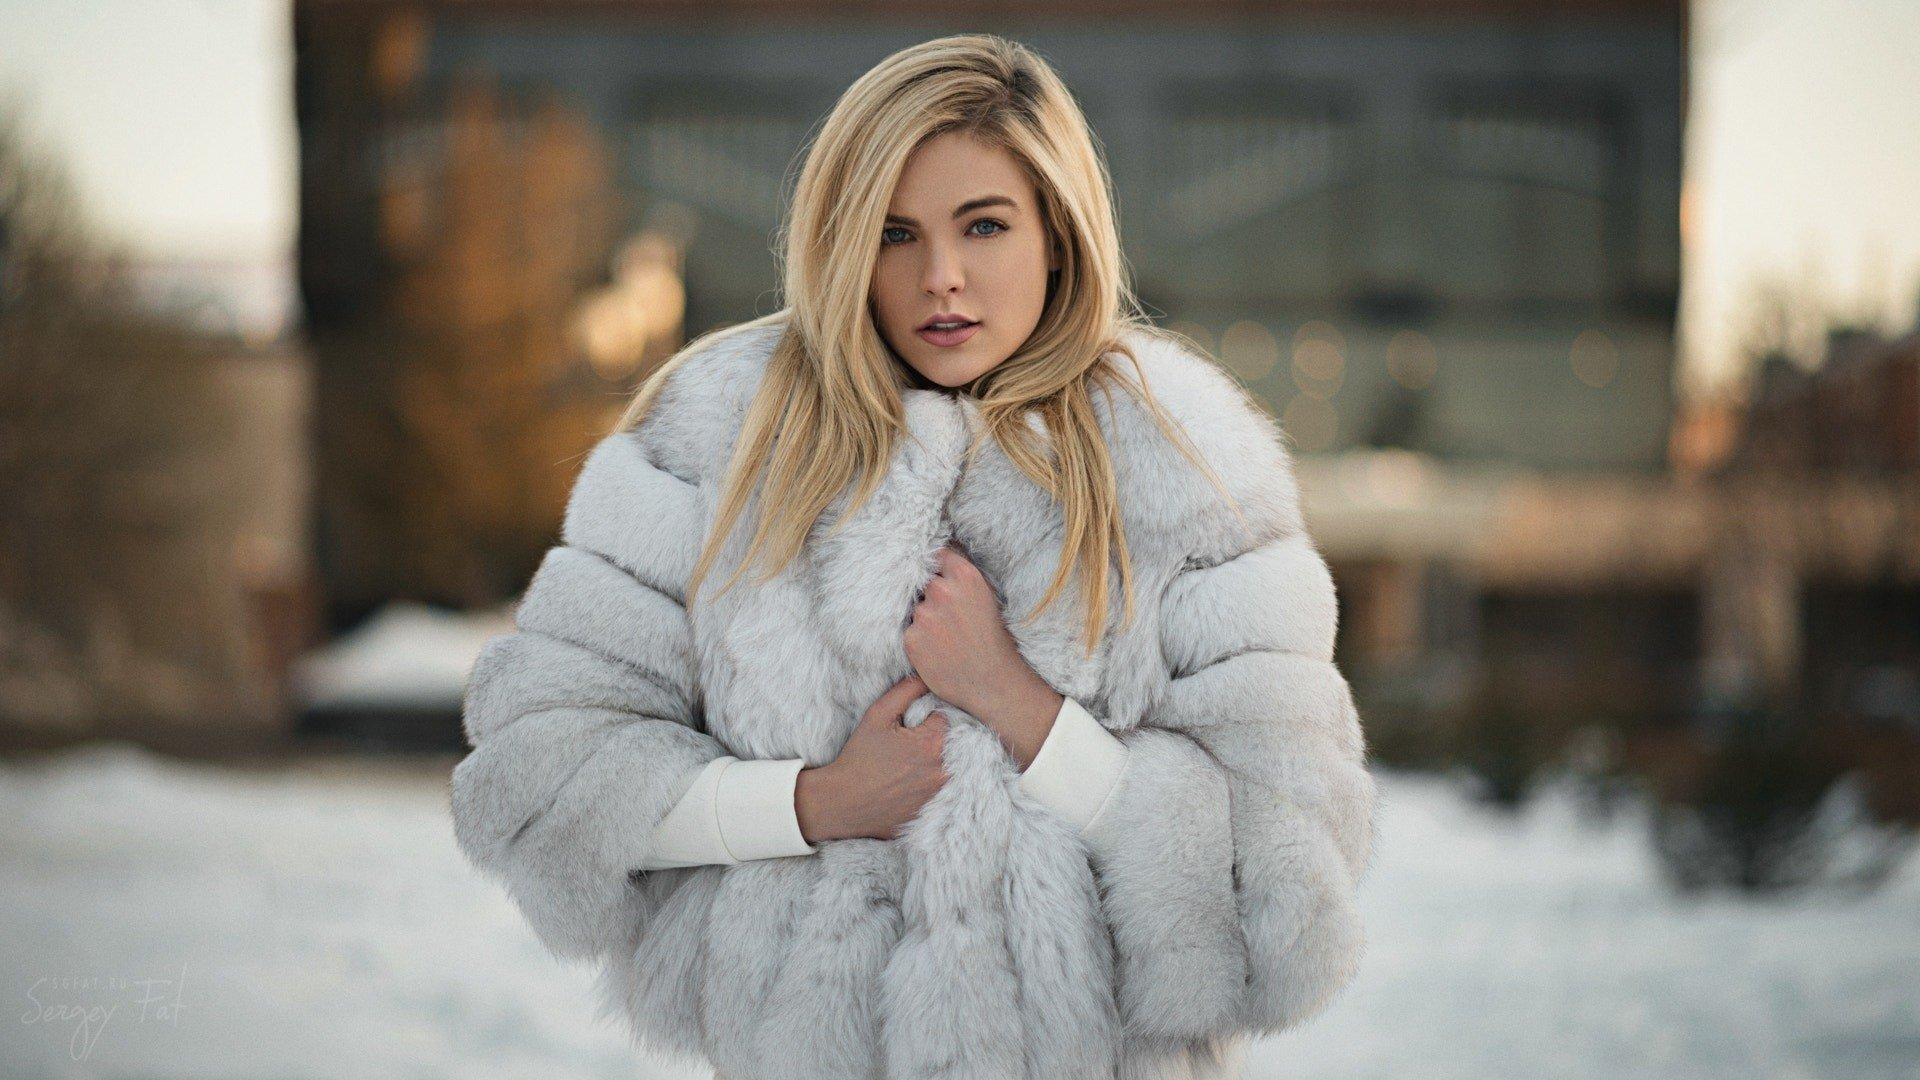 女性 - 模特  Depth Of Field 女孩 Woman Blue Eyes Blonde Coat Fur Snow 壁纸